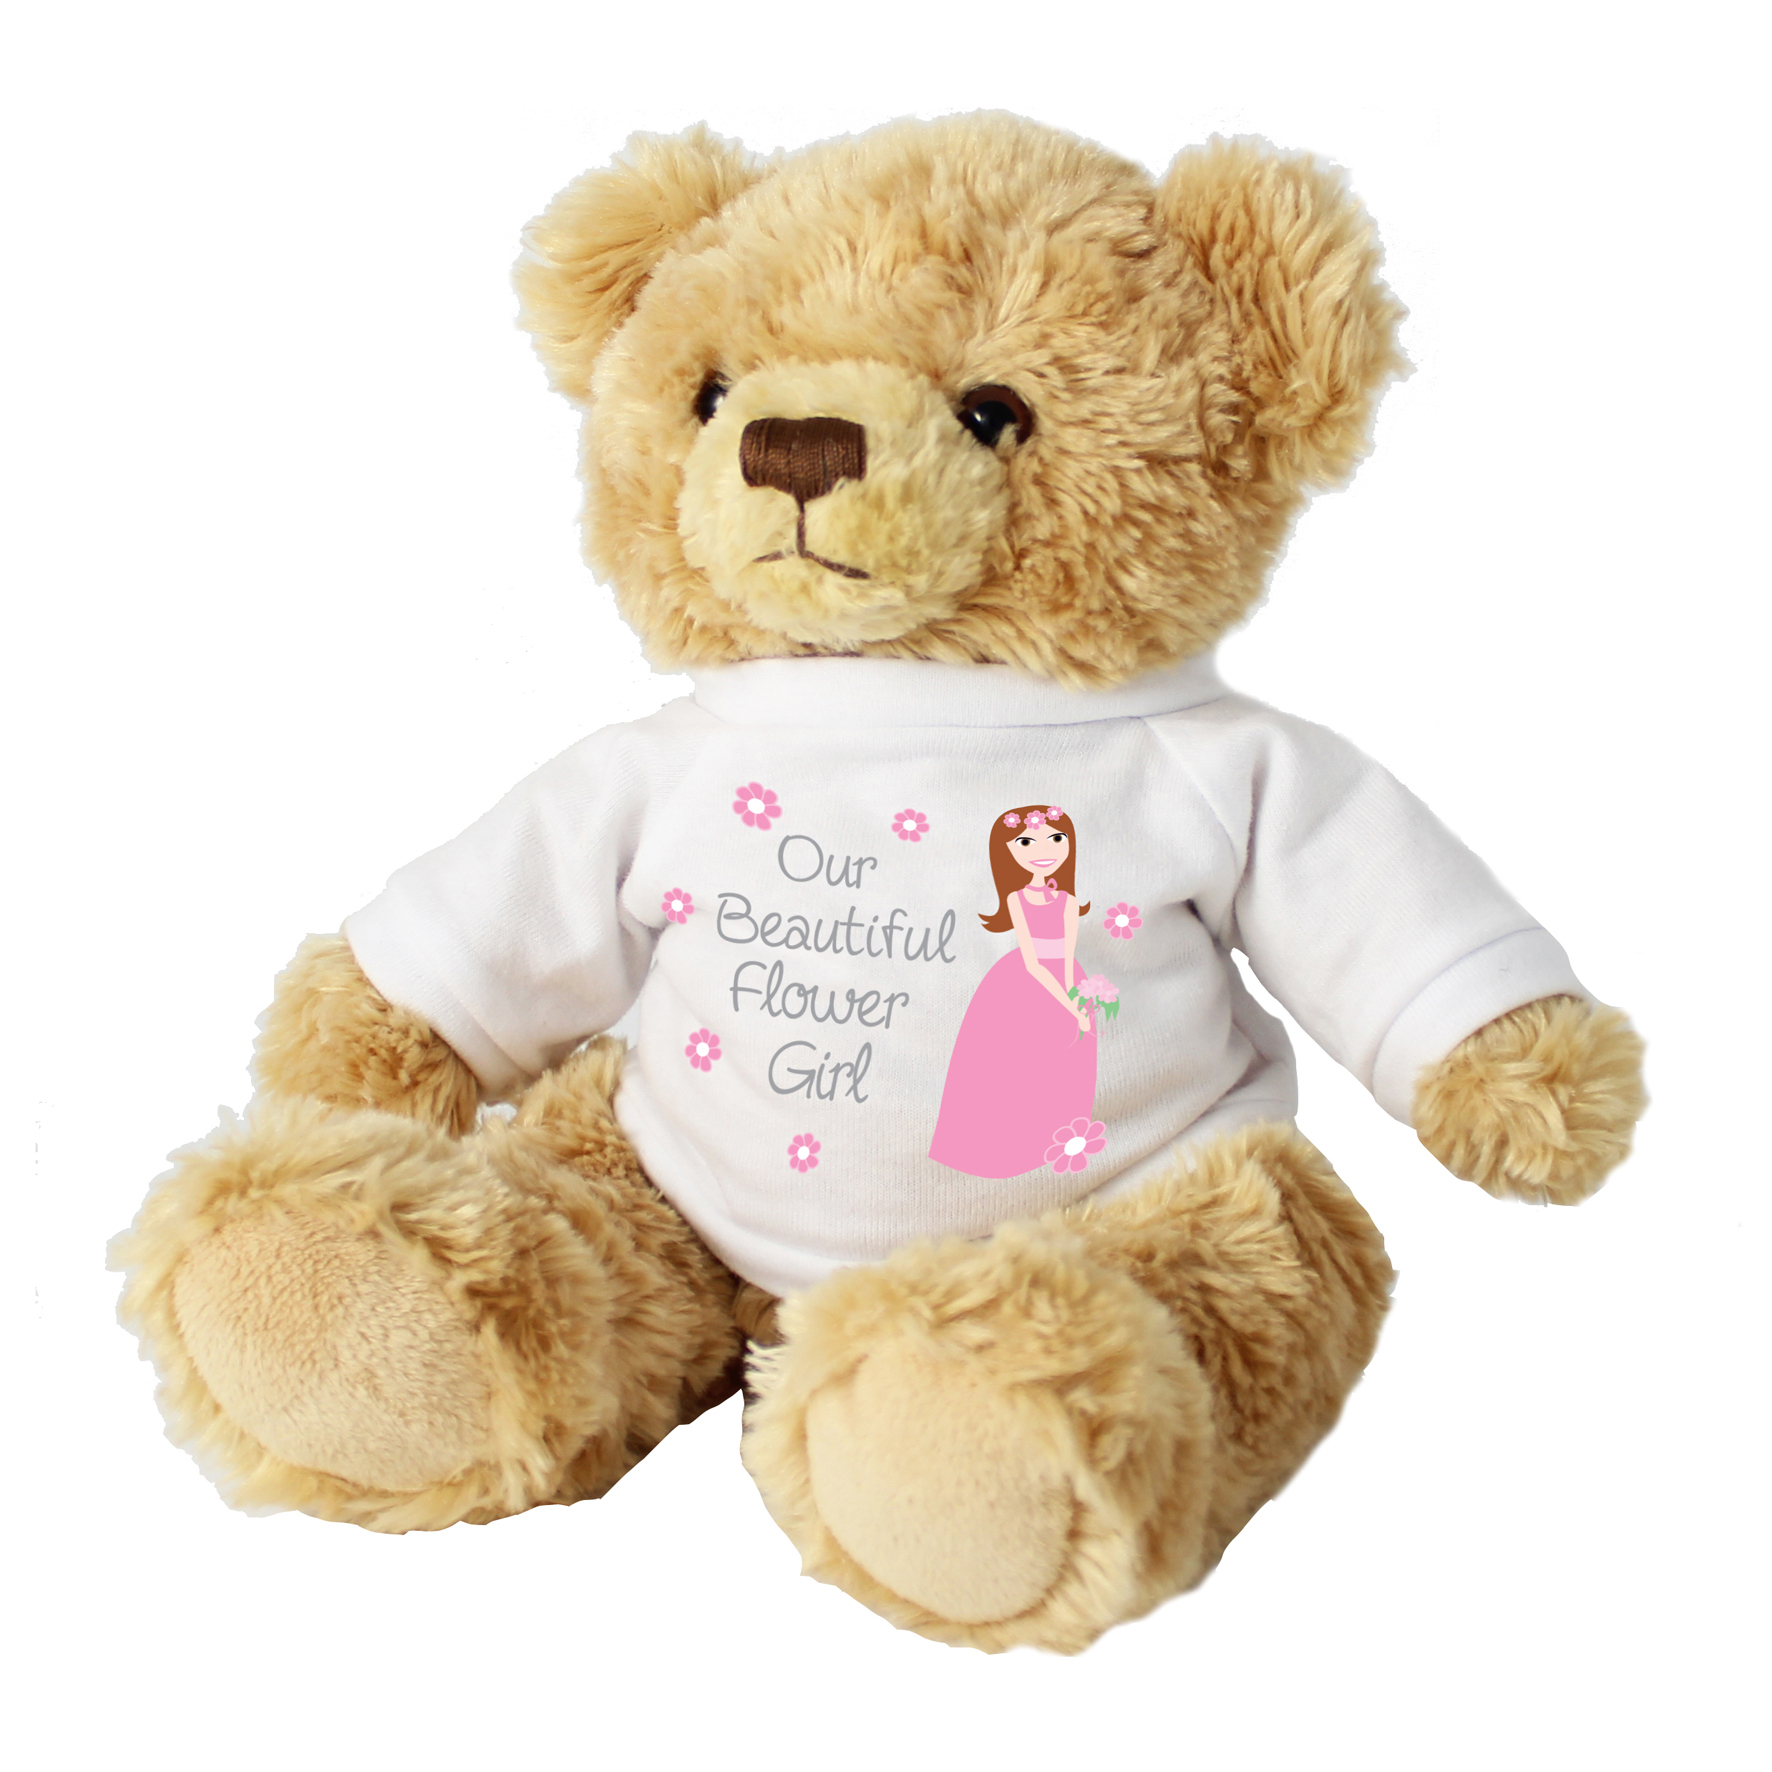 Fabulous Flower Girl Teddy Find The Perfect Gift